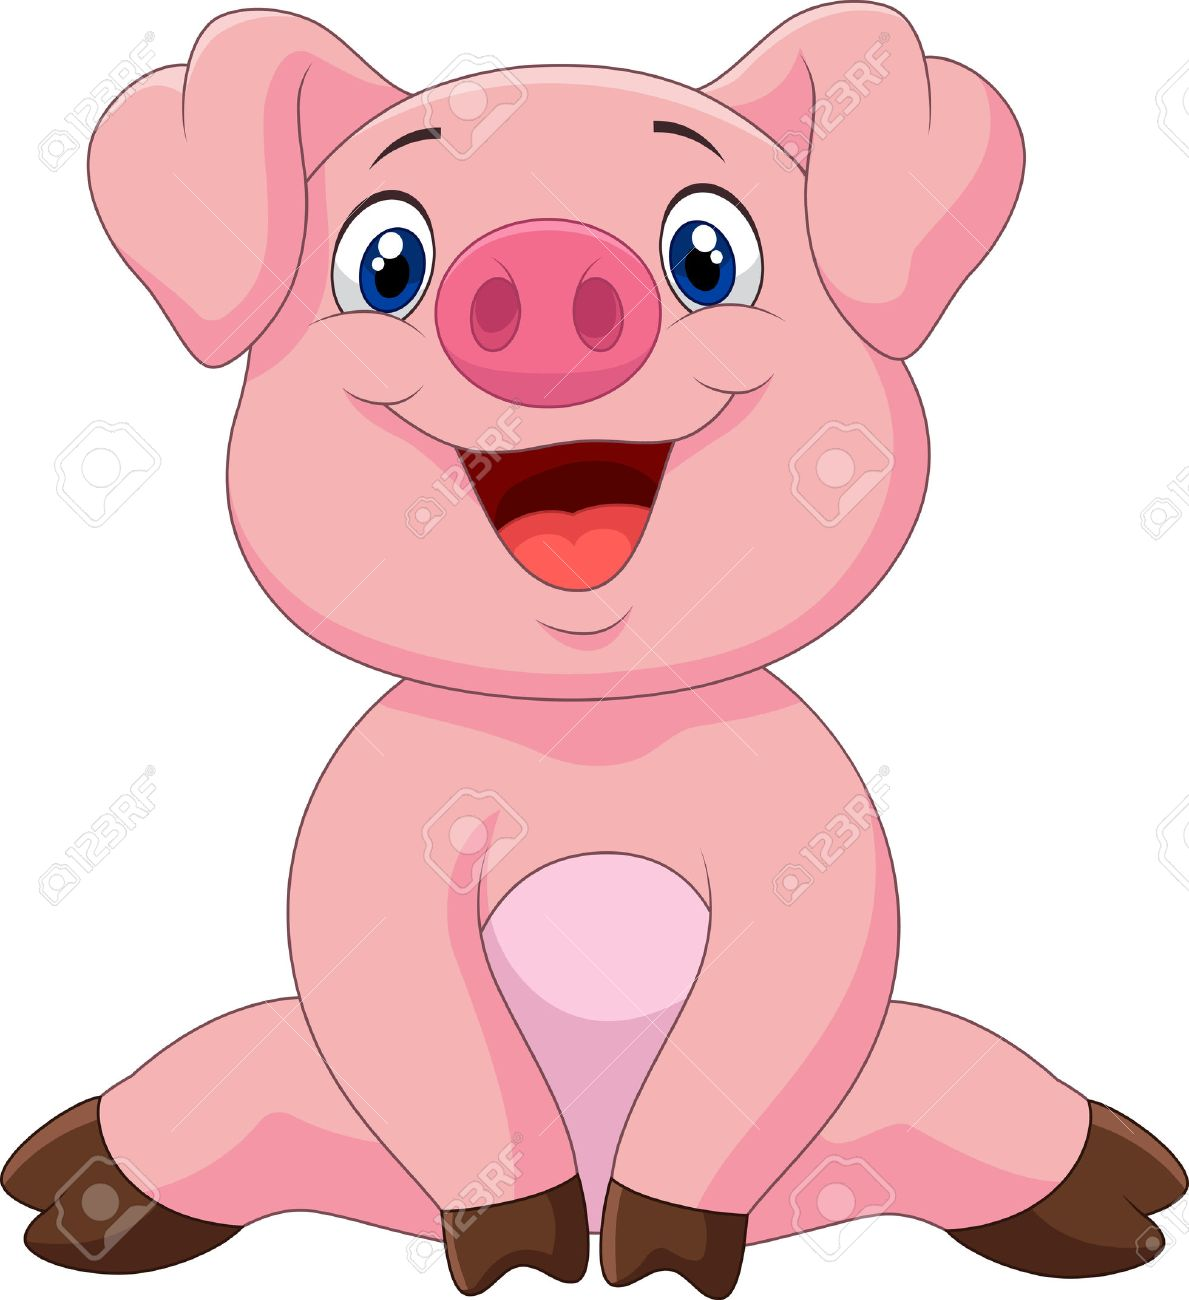 cartoon adorable baby pig vector illustration royalty free cliparts rh 123rf com pig vector outline pig vector outline